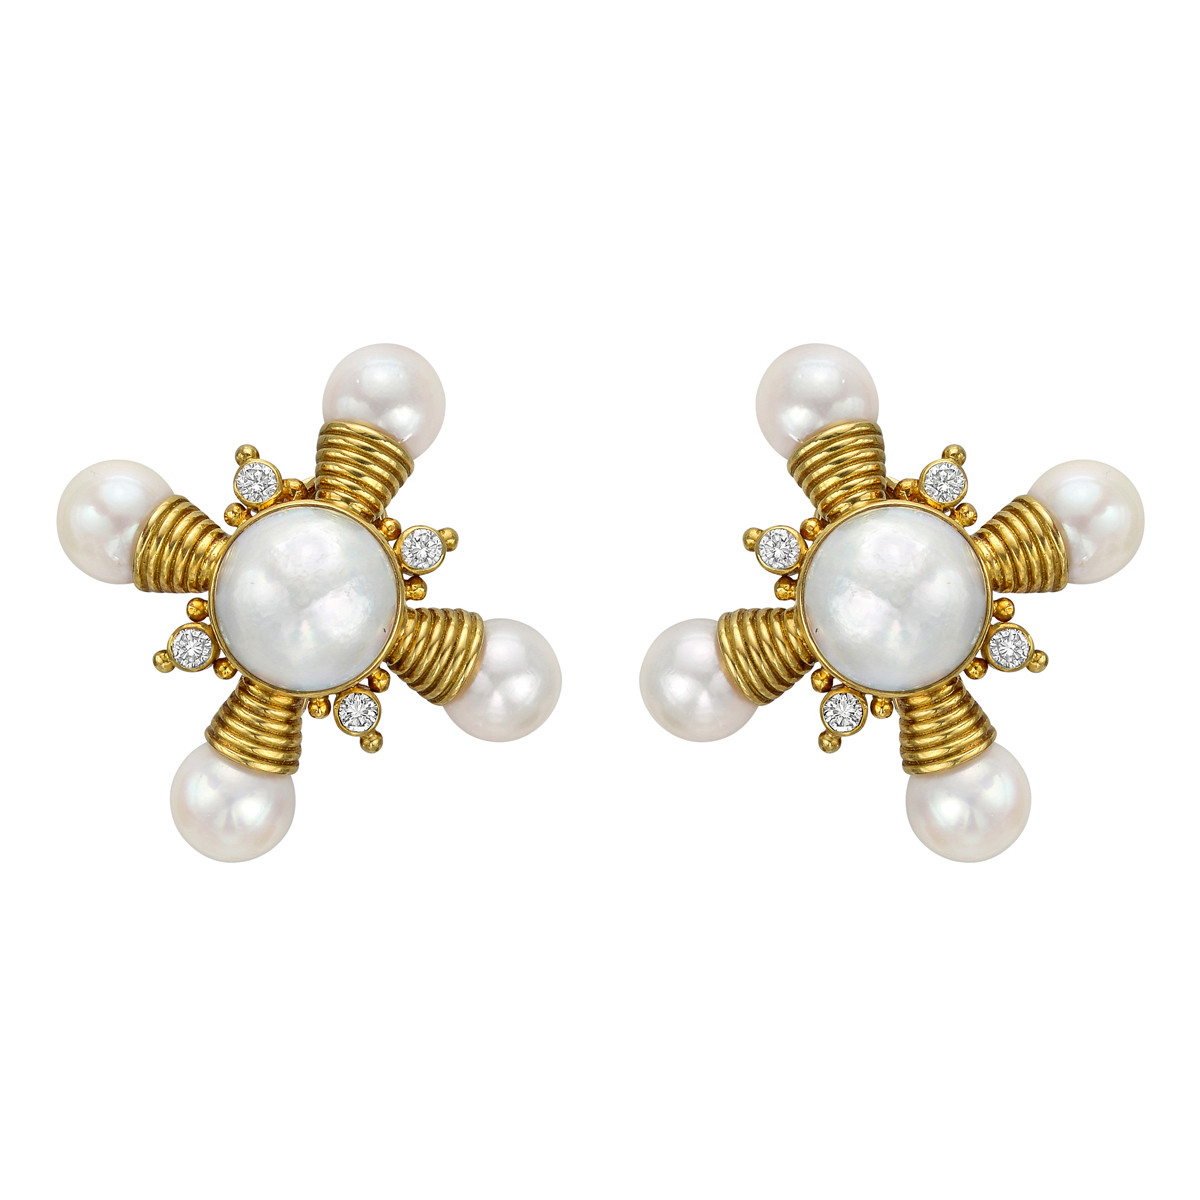 18k Yellow Gold, Pearl & Diamond Earrings